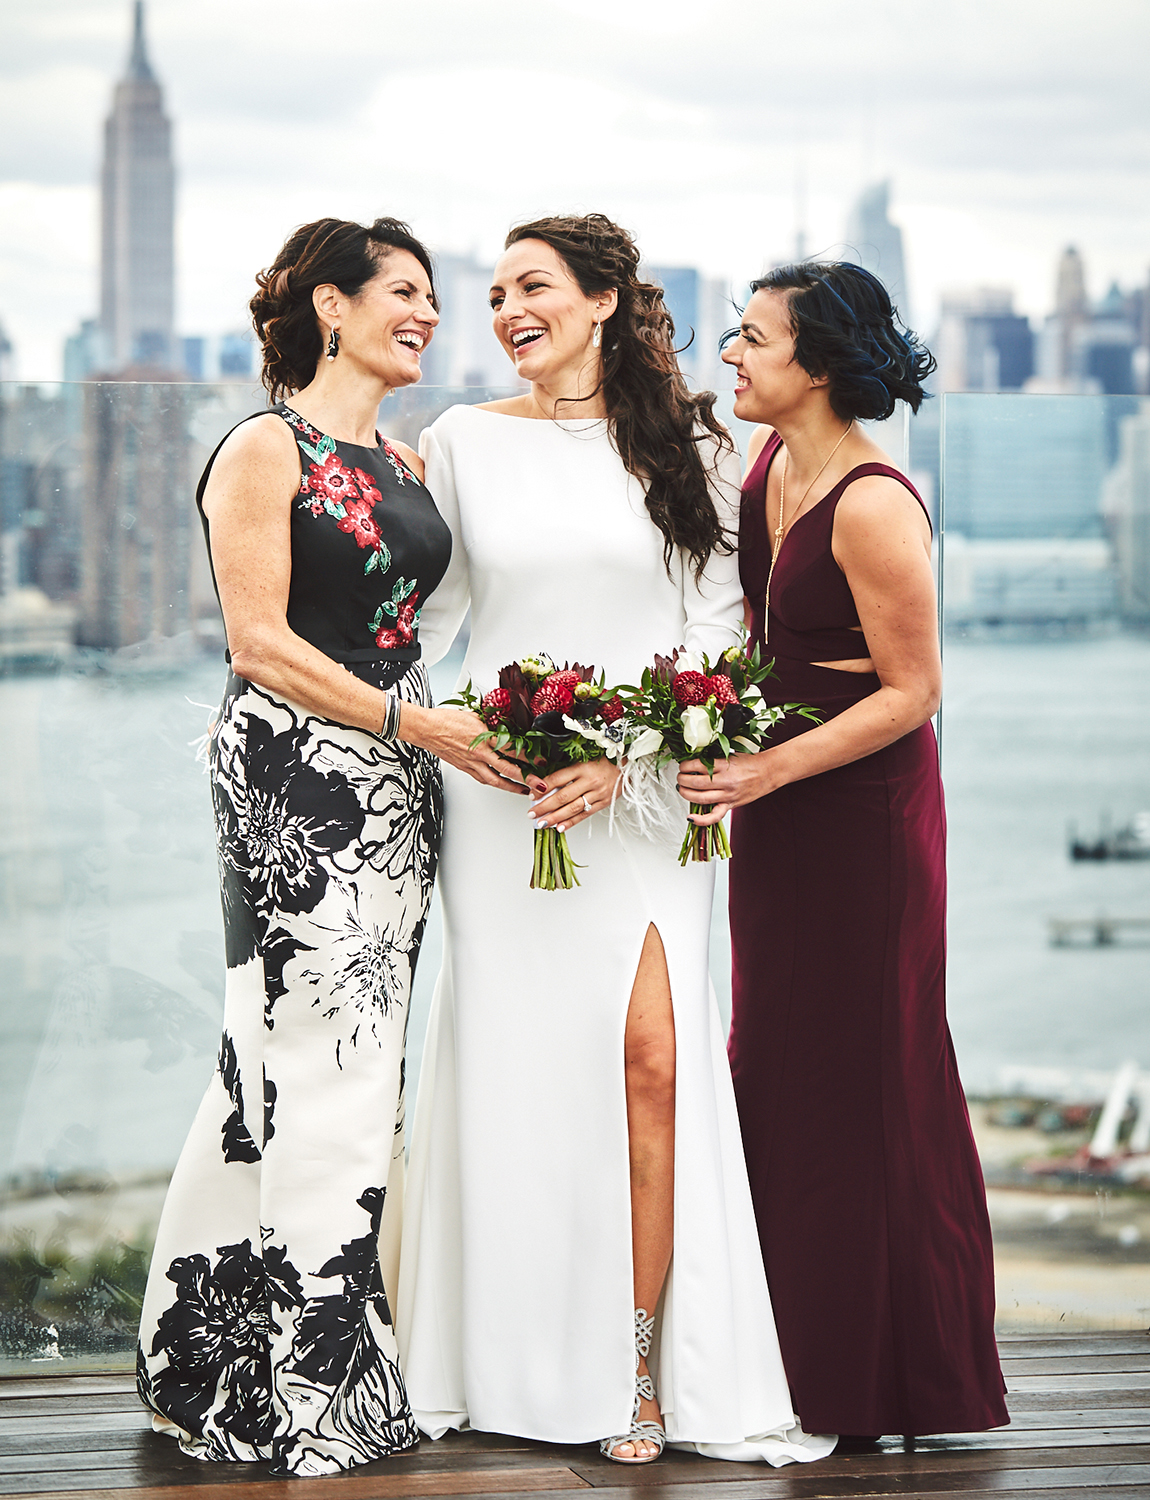 170930_WilliamValeWeddingPhotography_BrooklynWeddingPhotographer_By_BriJohnsonWeddings_0061.jpg